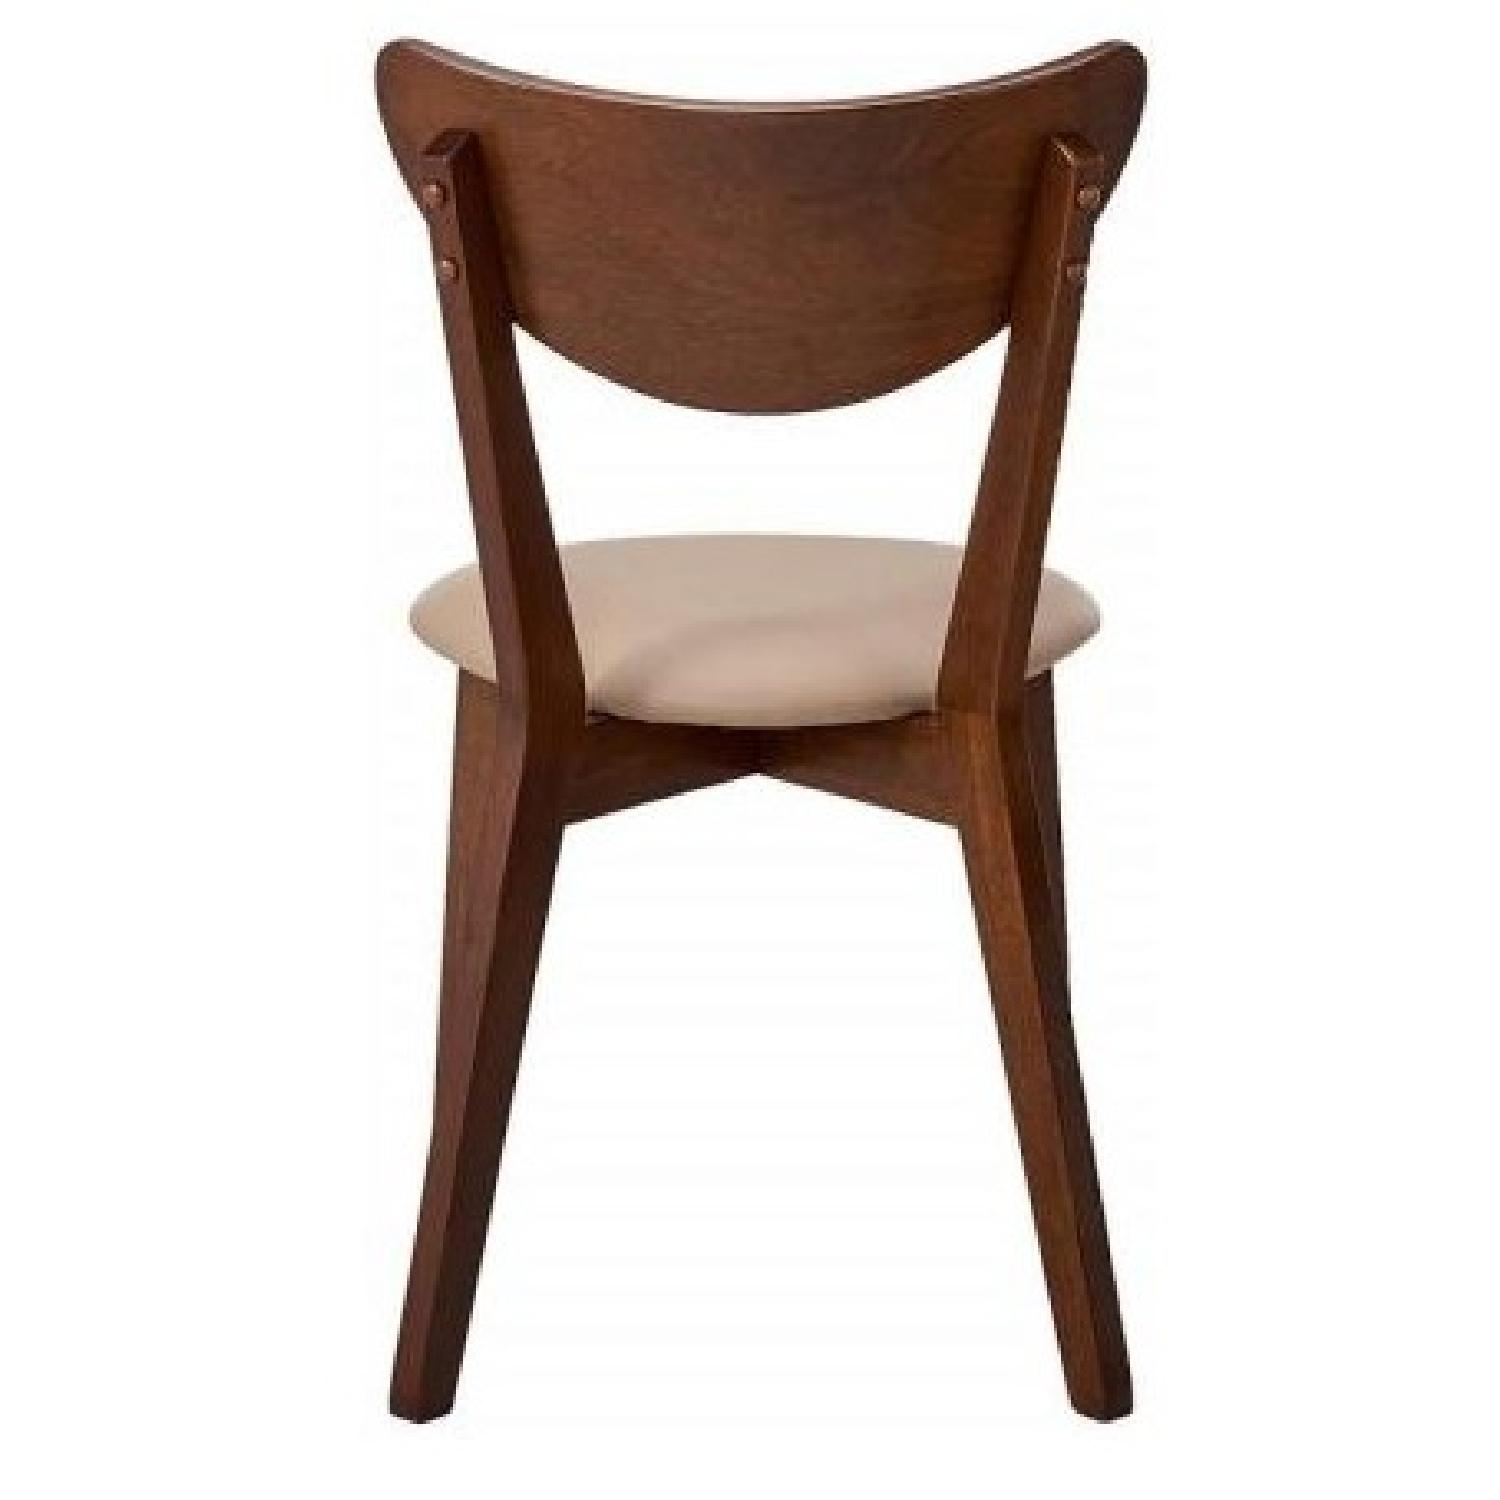 Magnificent Mid Century Retro Style Dining Chair W Curved Back In Machost Co Dining Chair Design Ideas Machostcouk